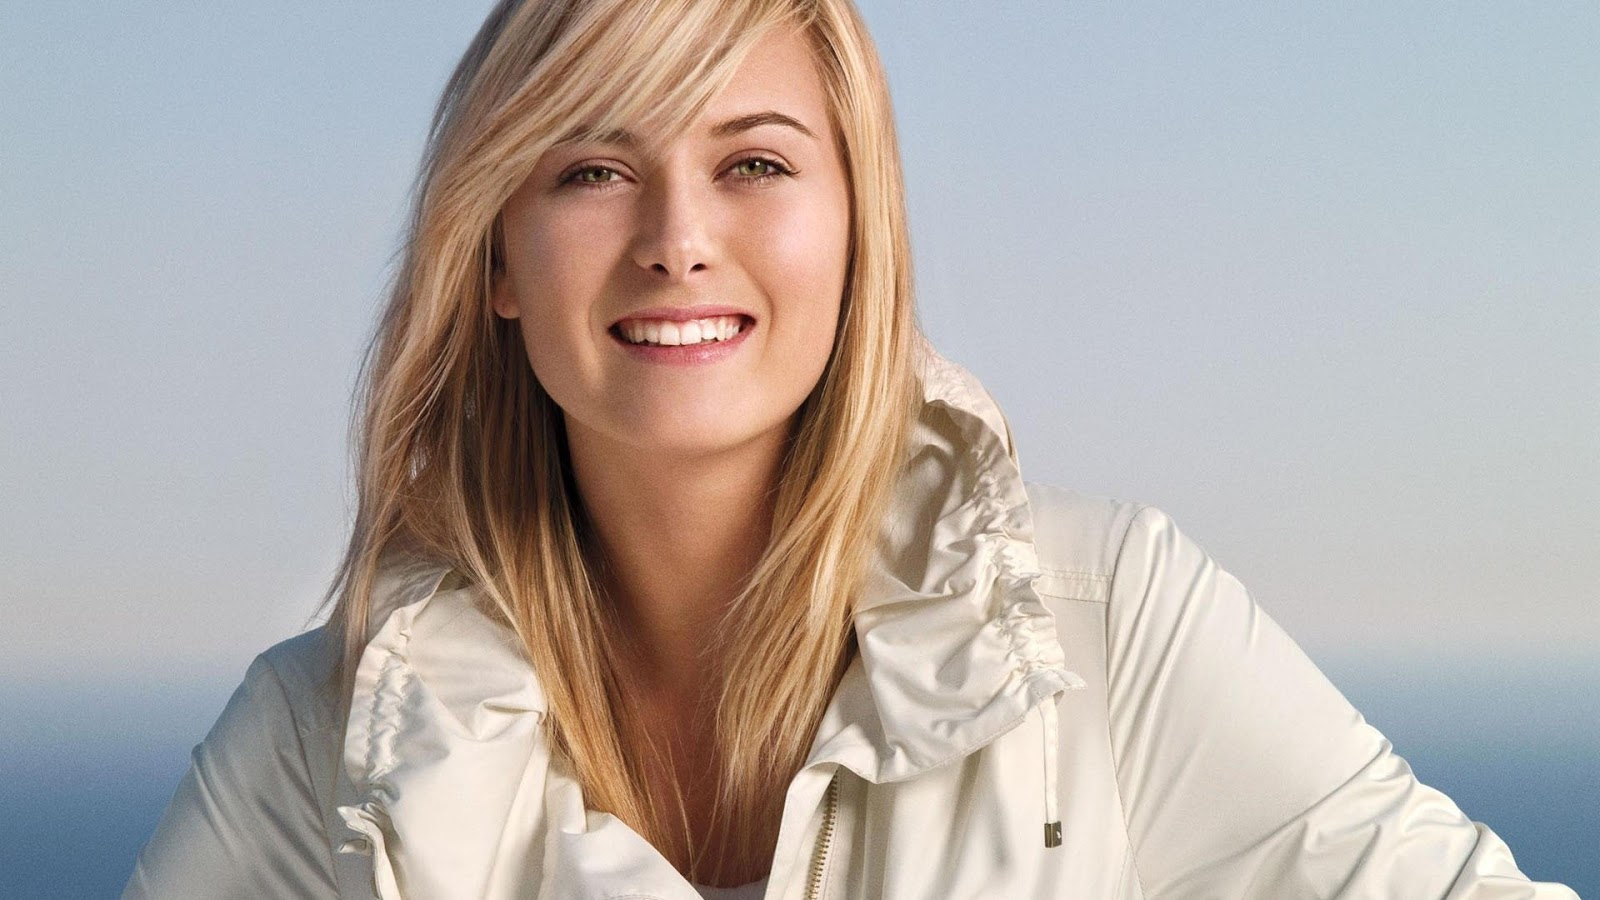 Cute Baby Comments Wallpapers Maria Sharapova Hd Wallpapers Most Beautiful Places In